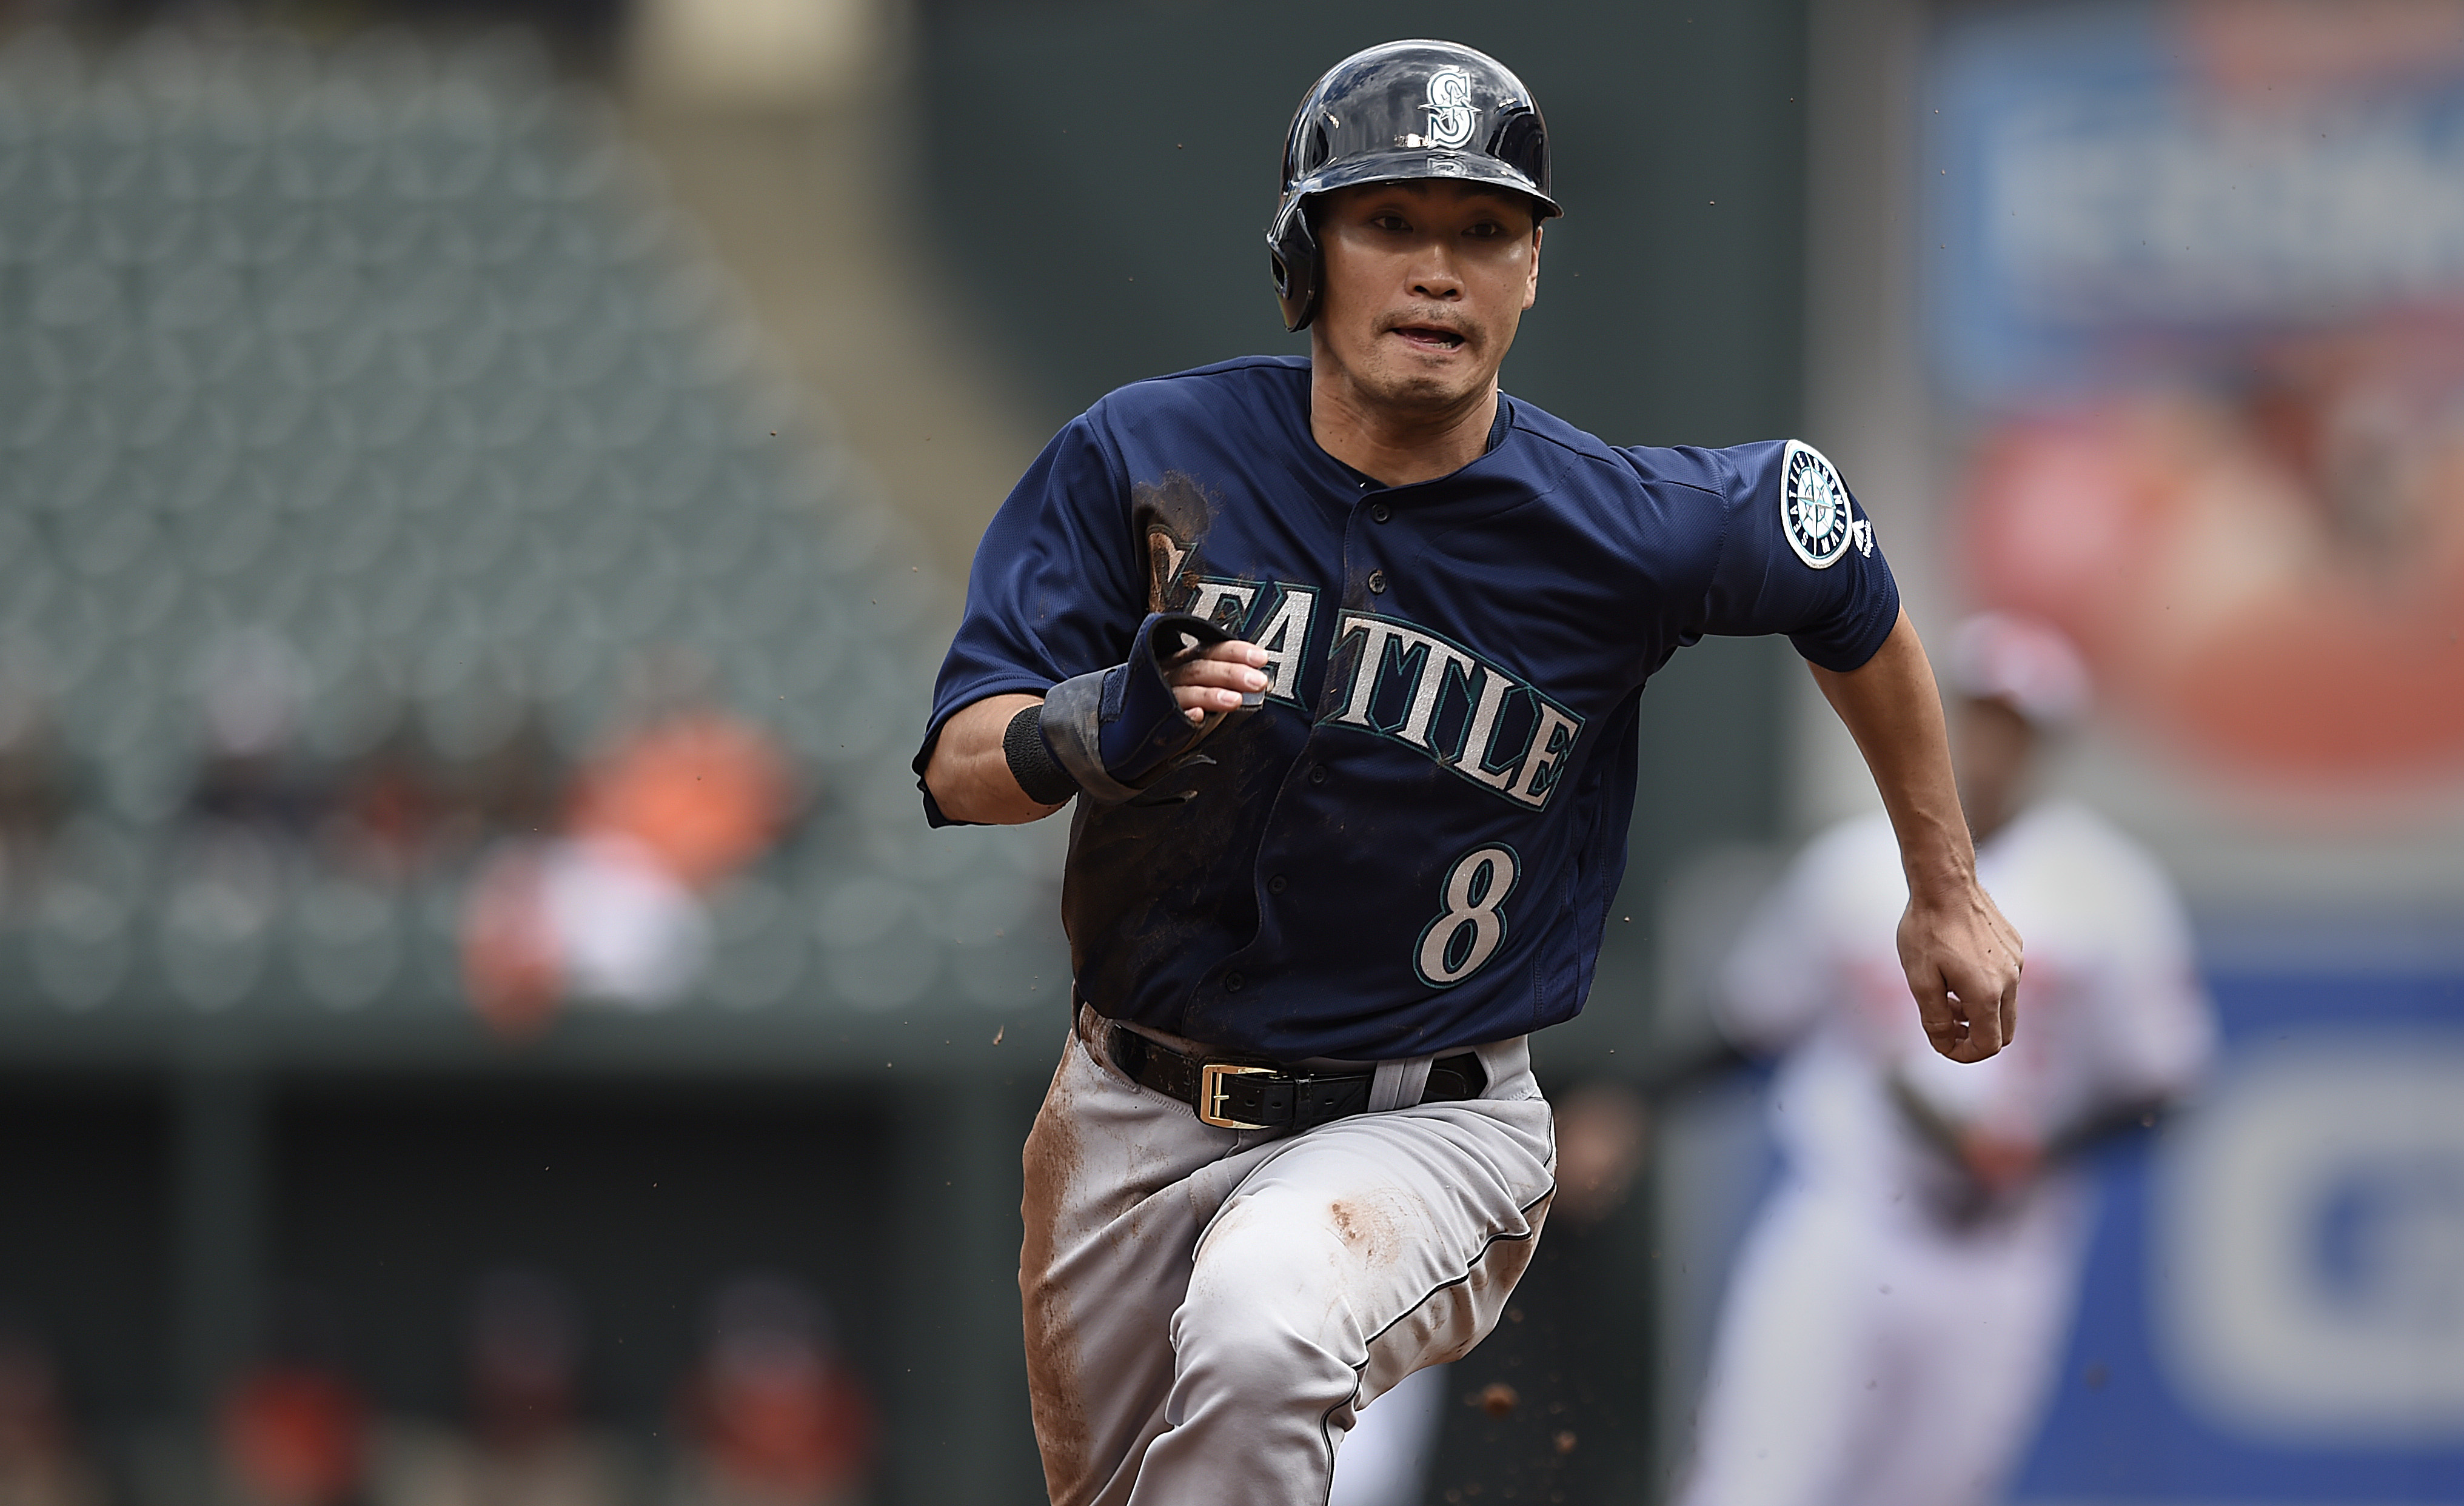 Seattle Mariners' Norichika Aoki races home to score on a single by Nelson Cruz in the first inning of a baseball game against the Baltimore Orioles, Thursday, May 19, 2016, in Baltimore. (AP Photo/Gail Burton)